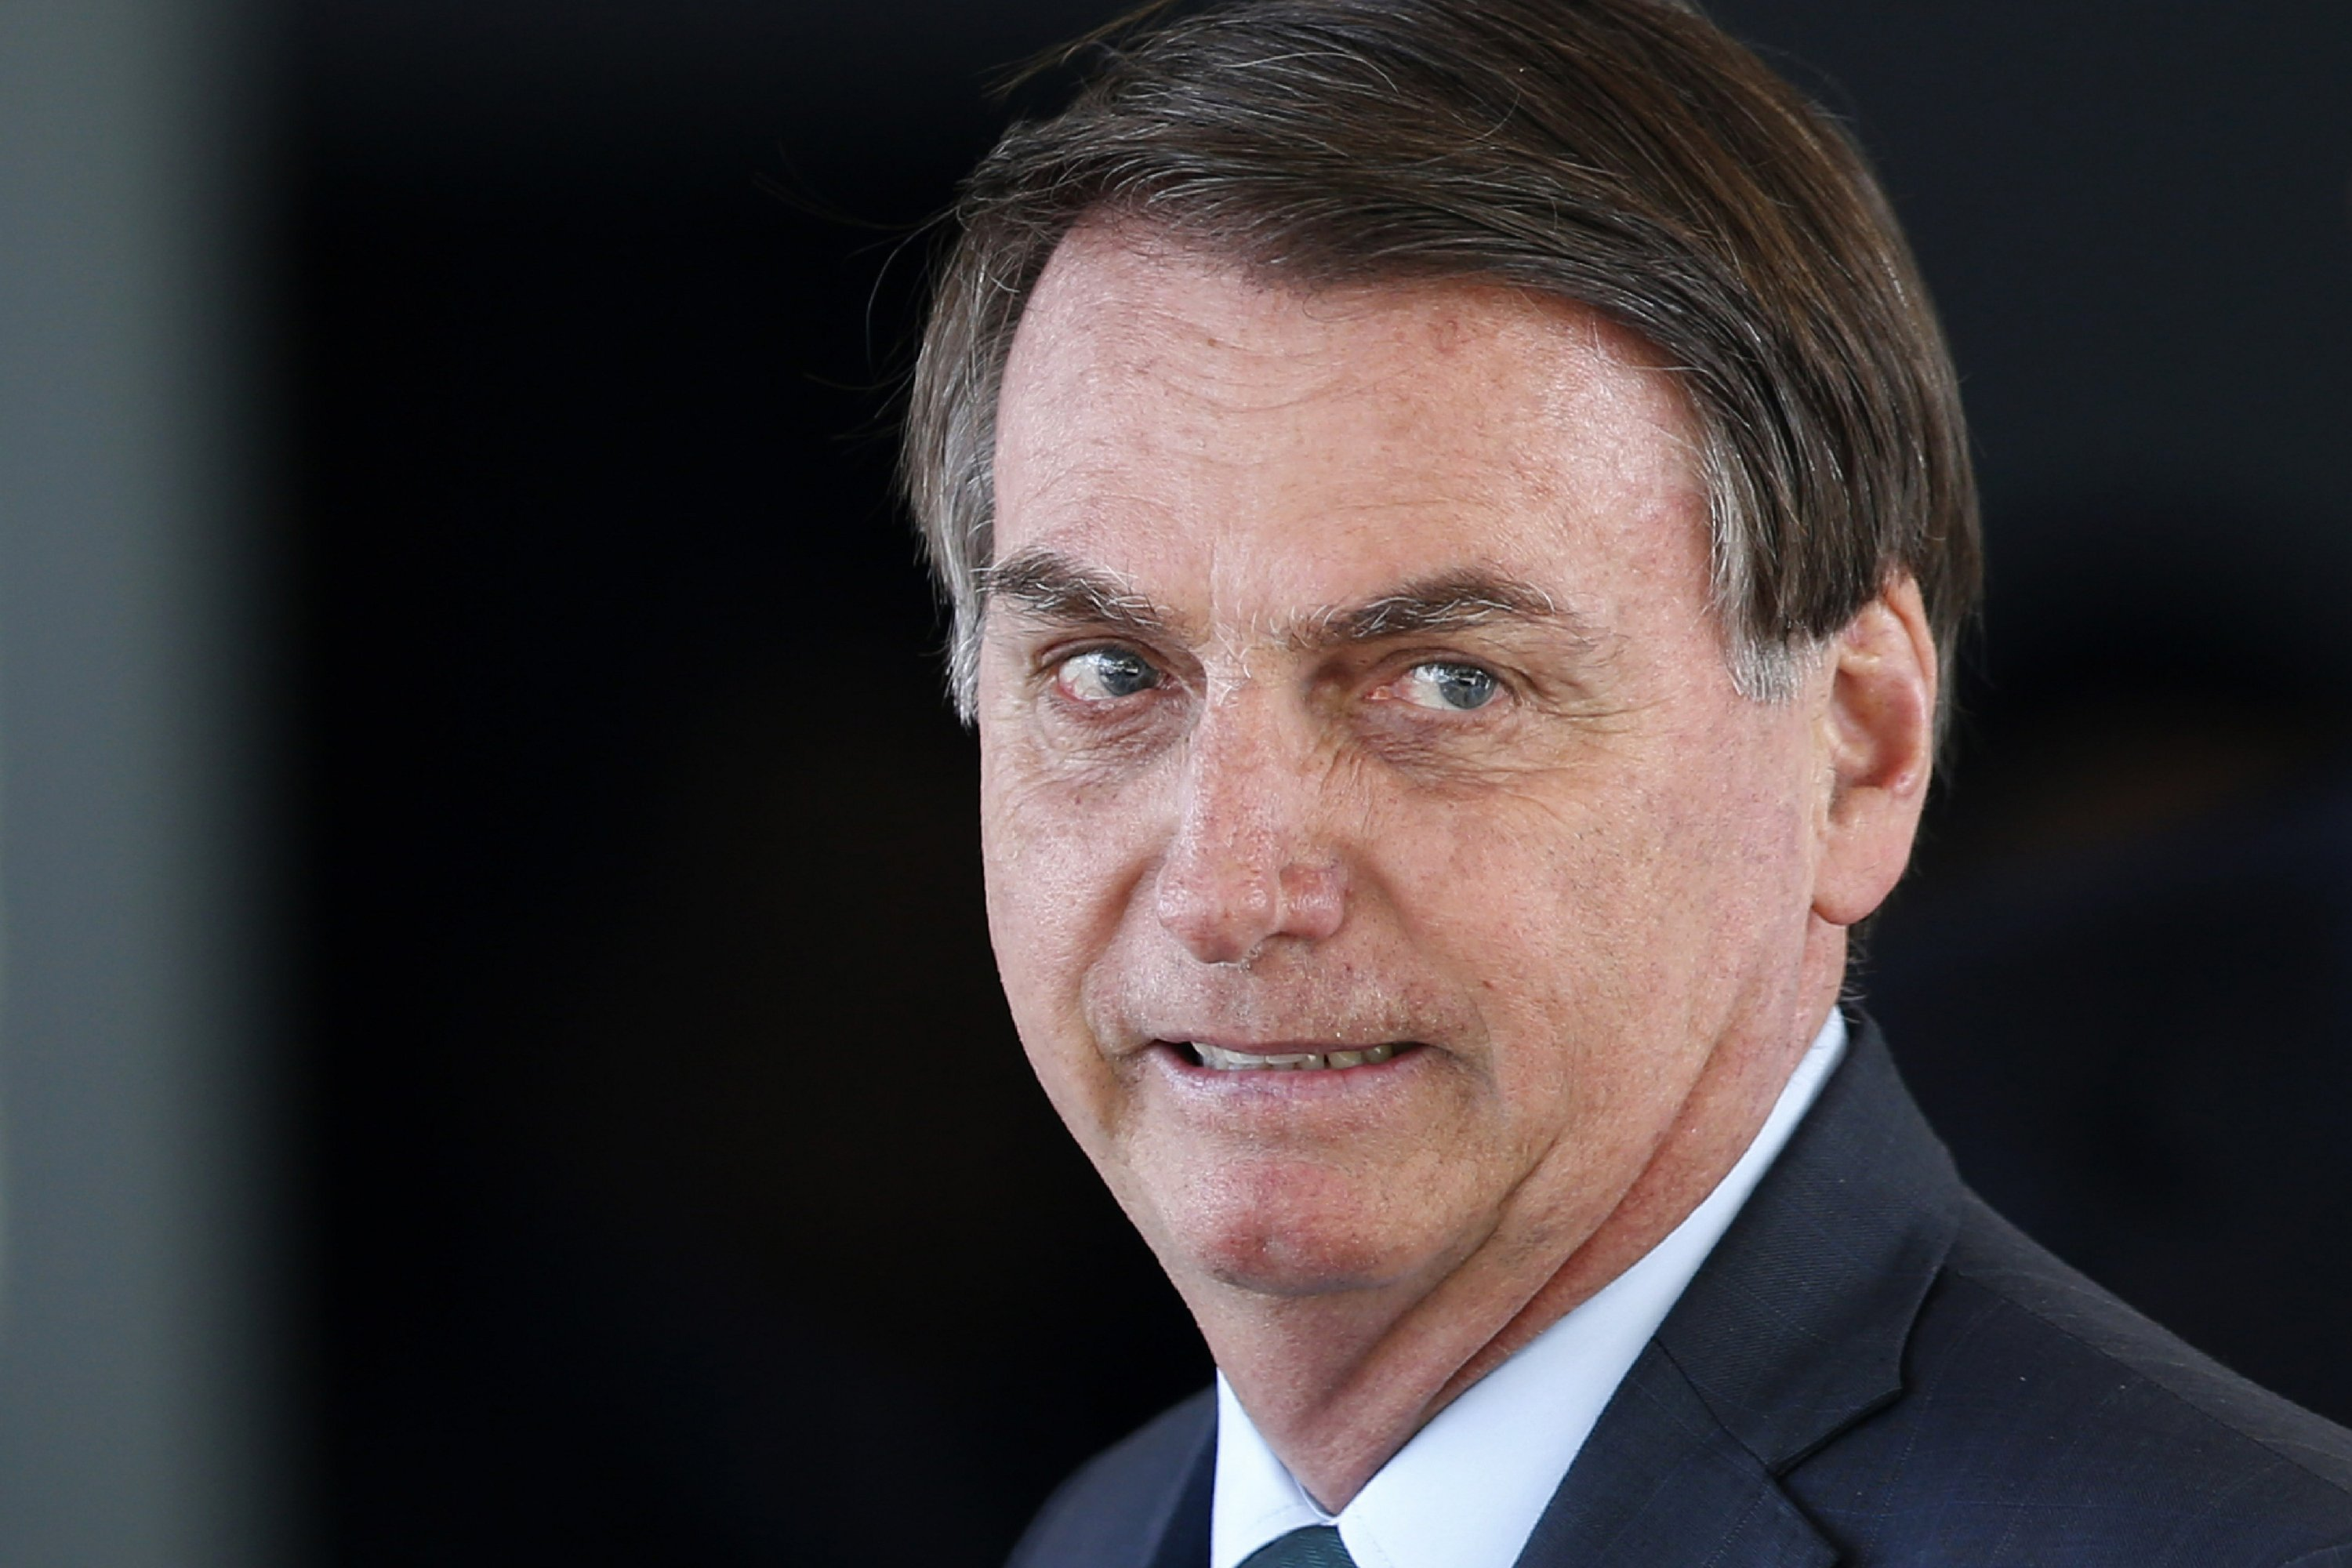 Brazil indigenous groups accuse Bolsonaro of racist comment